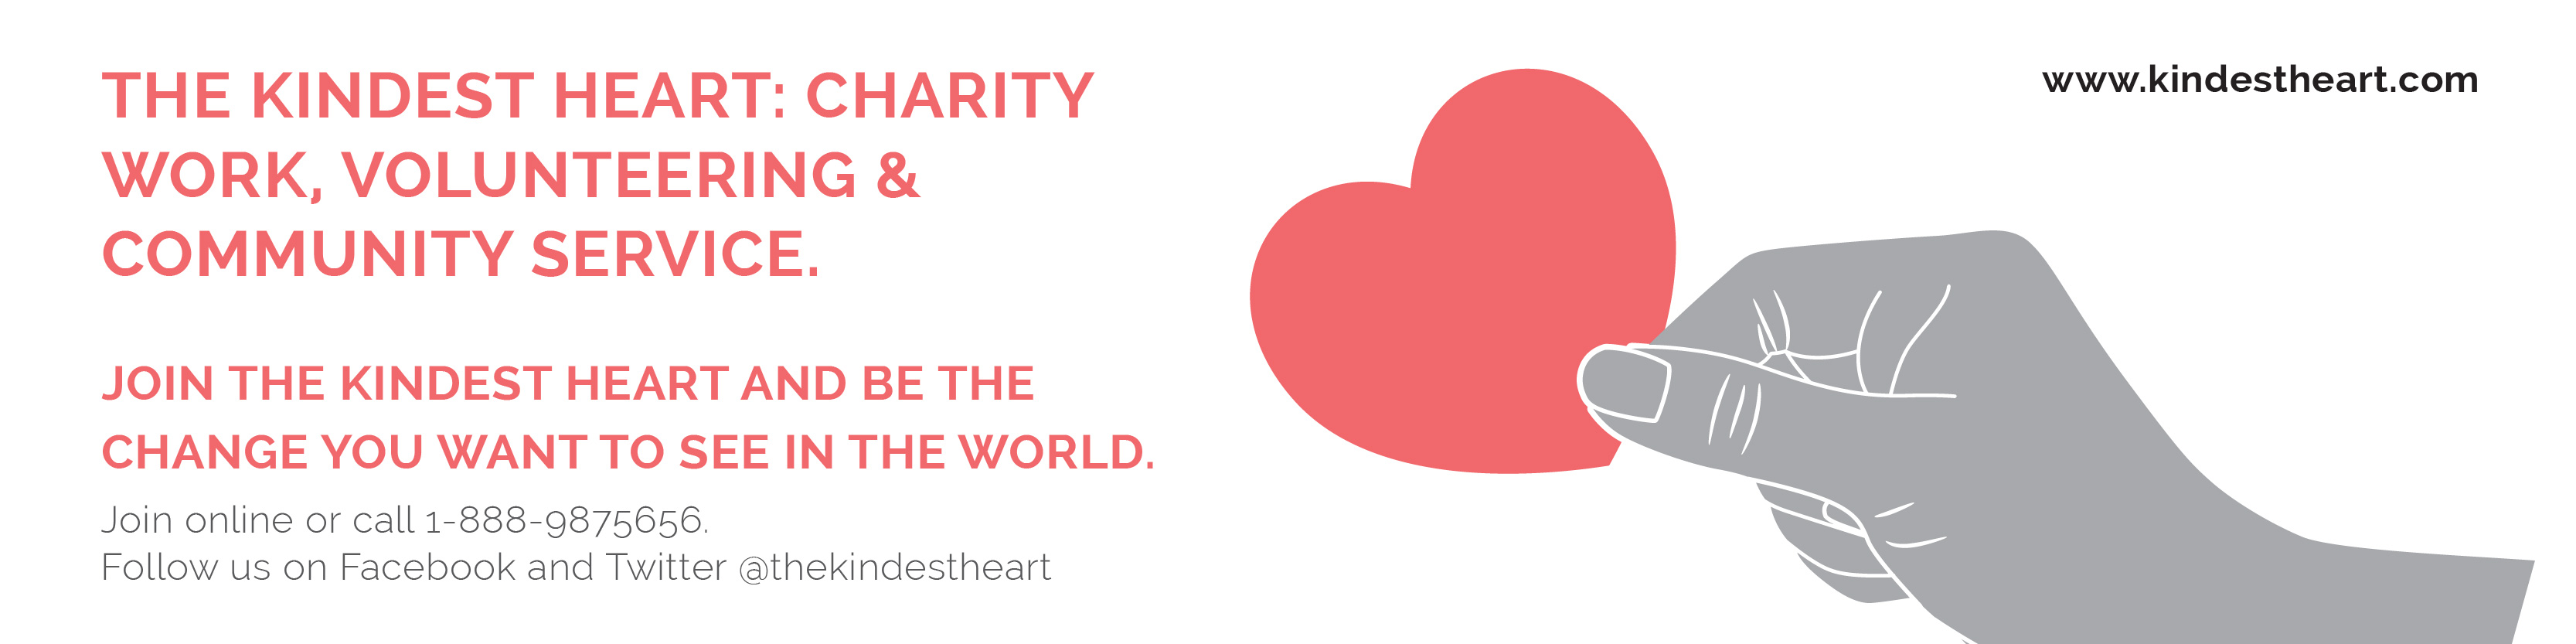 The Kindest Heart Charity Work Twitter Ad Template Design Online